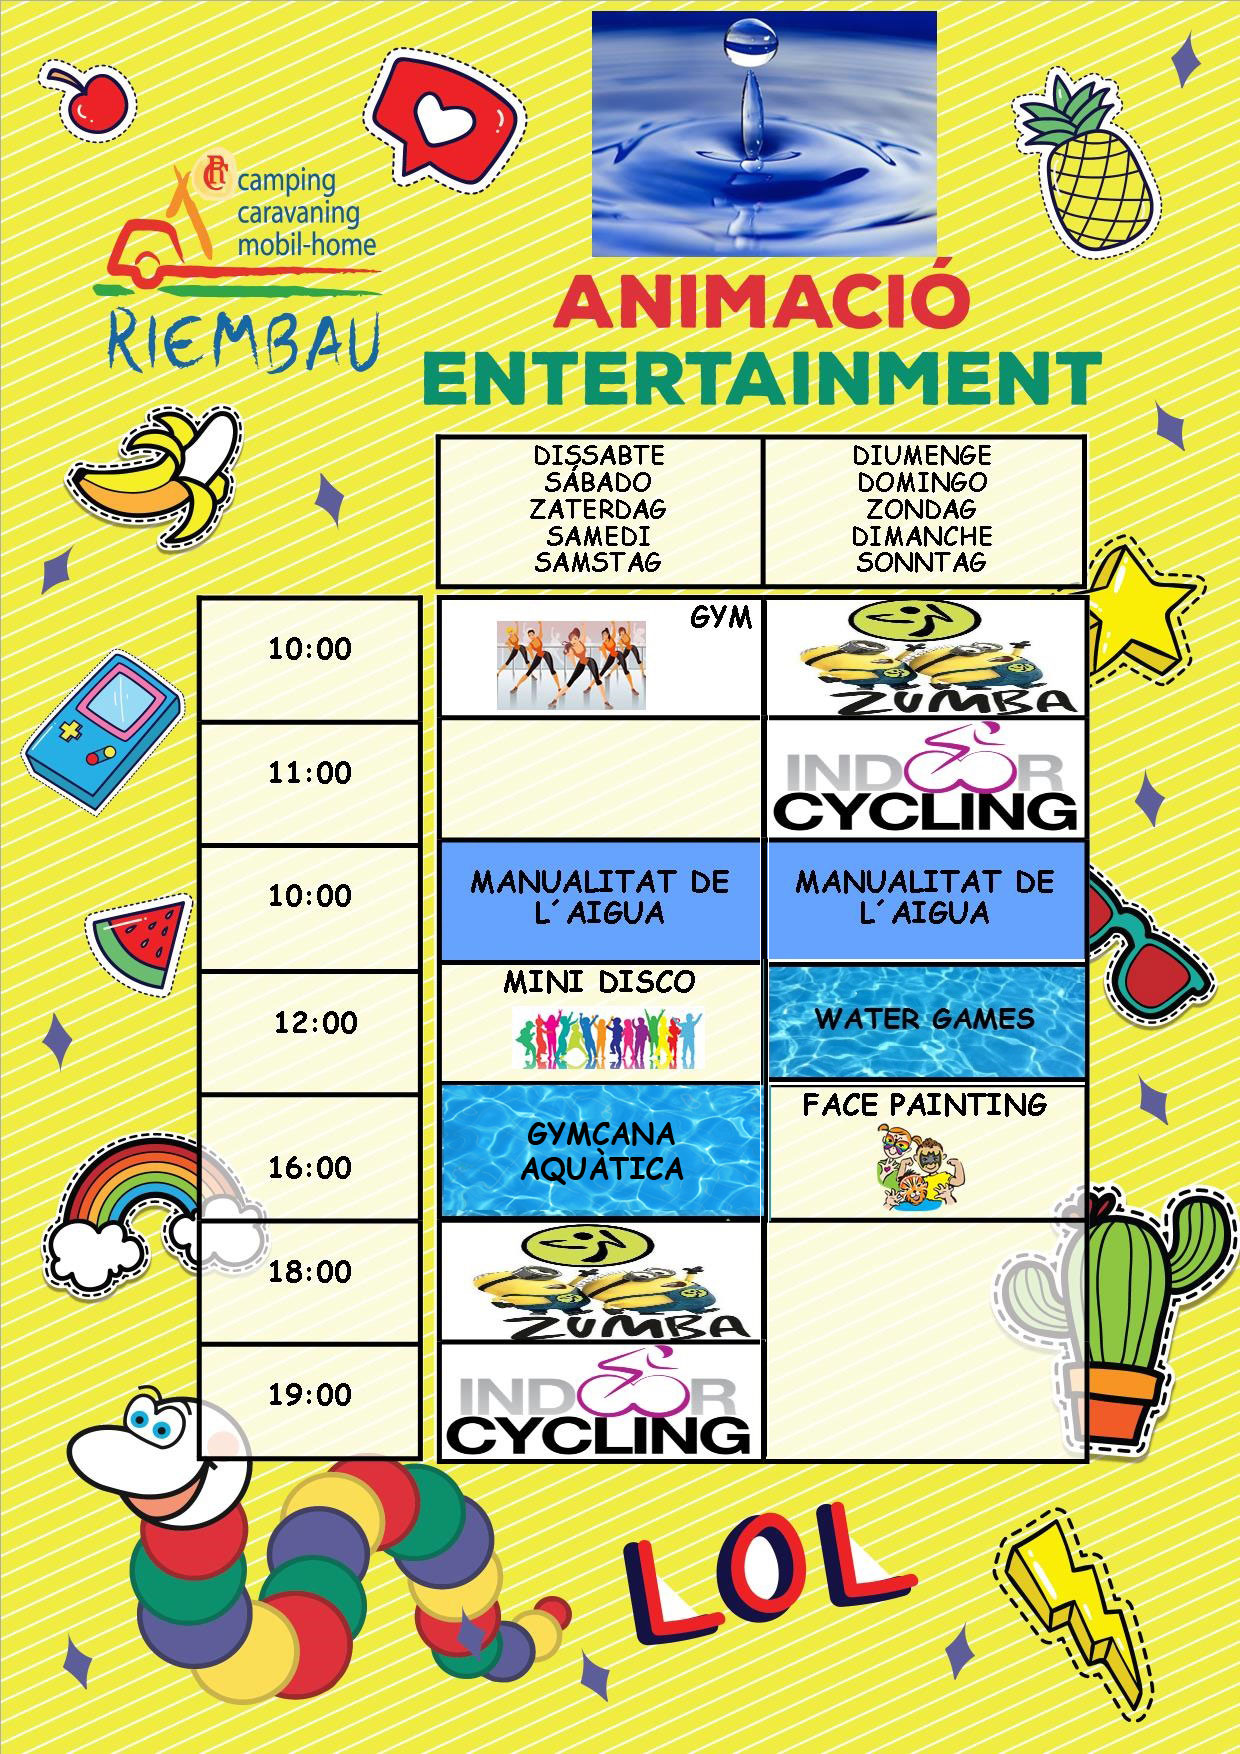 Activities from 15th to 16th June May by the Rimbi Club at Camping Riembau in Platja d'Aro!